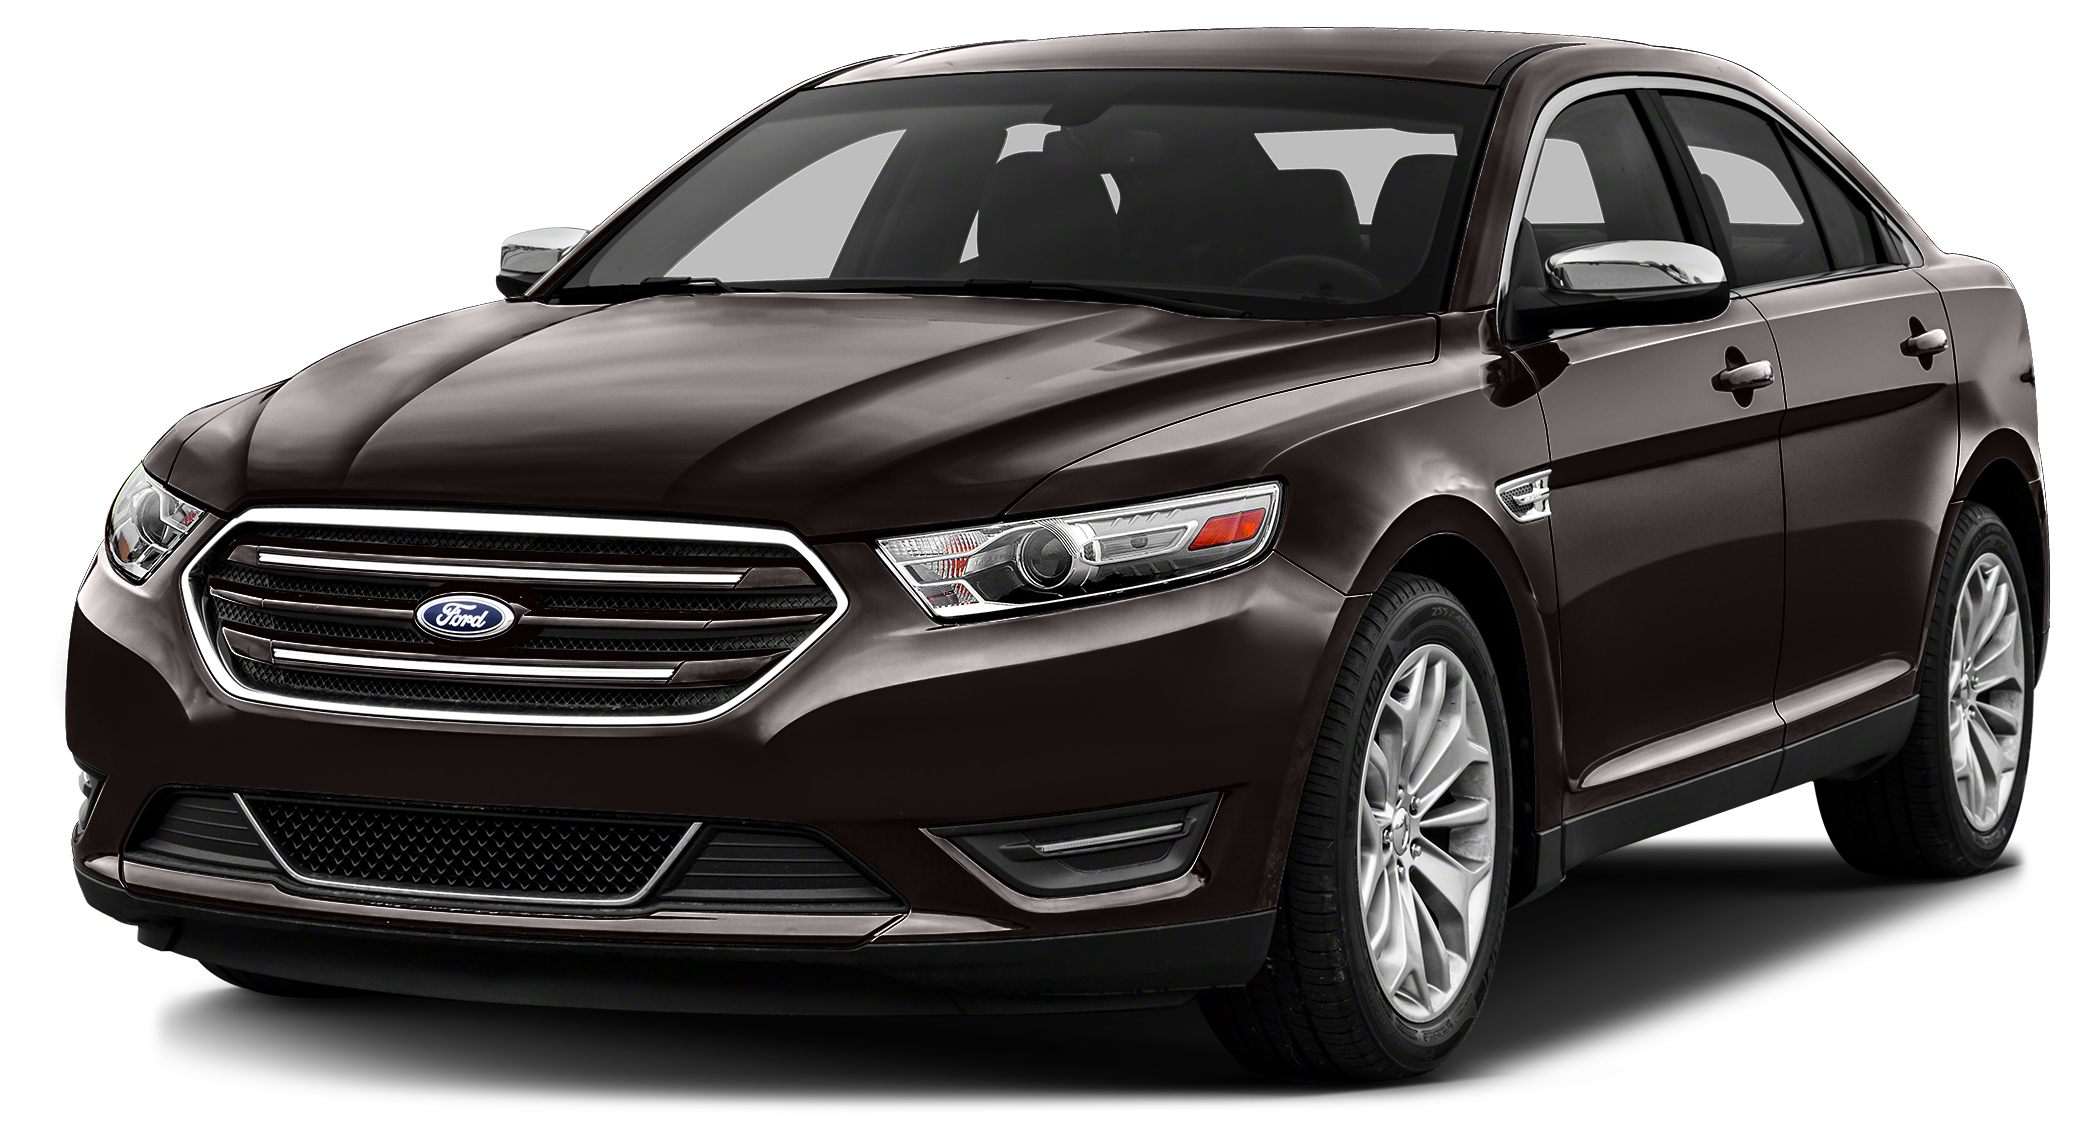 2014 Ford Taurus Limited Miles 52776Color Brown Stock 20393 VIN 1FAHP2F89EG112176